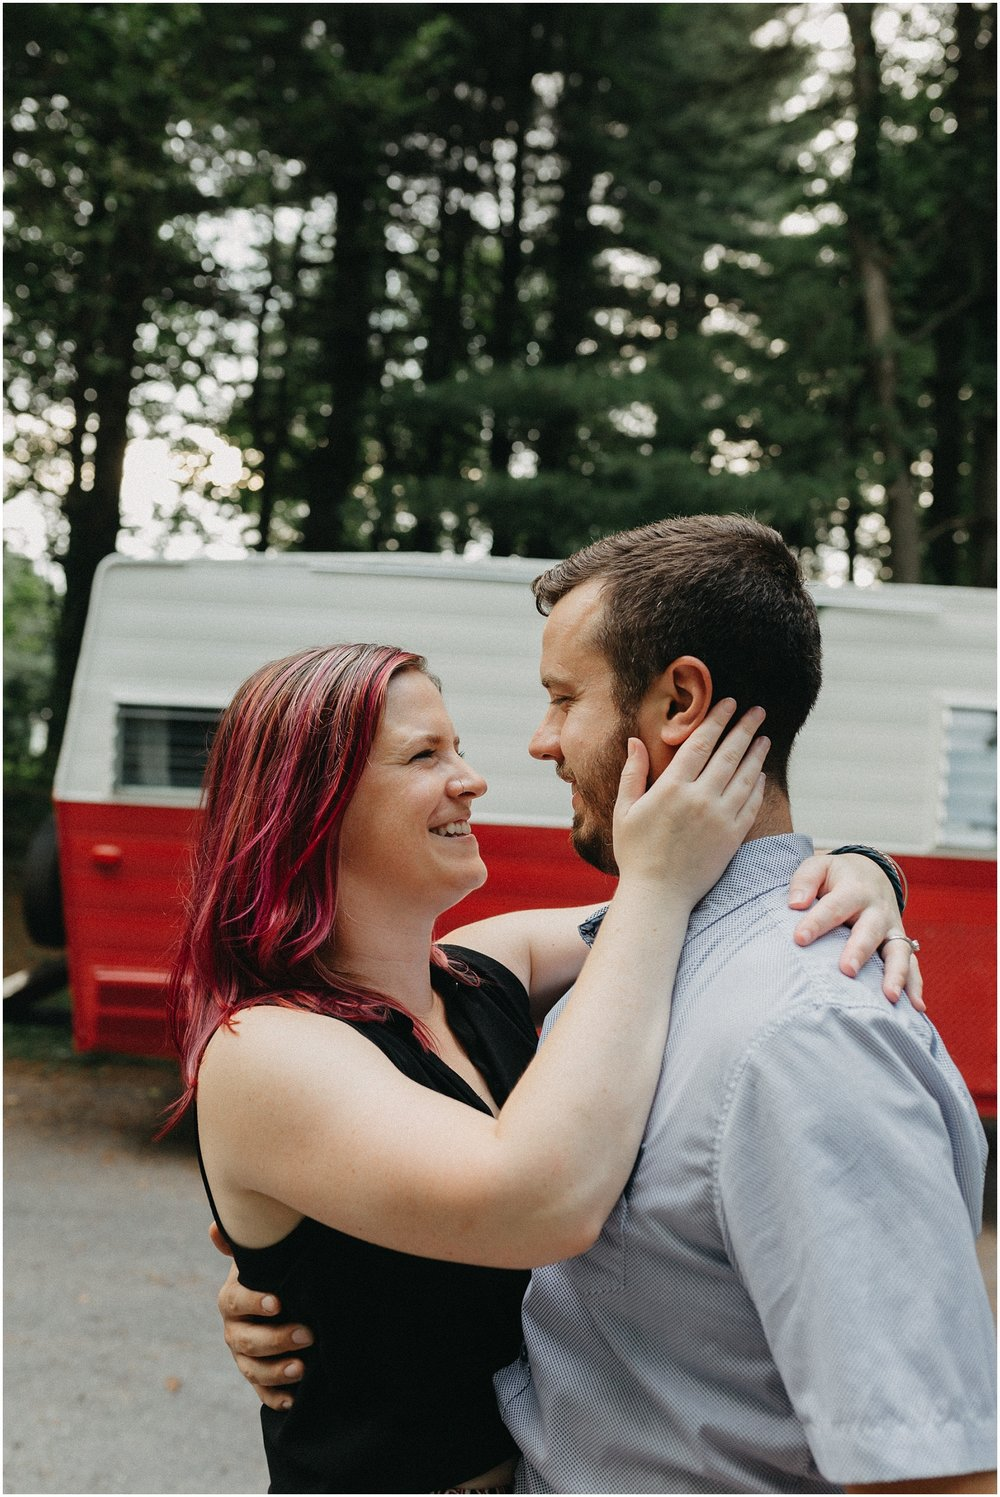 lifestyle-anniversary-engagement-photo session-rv-camping-road trip-vintage trailer-camping-outdoor photos_0229.jpg